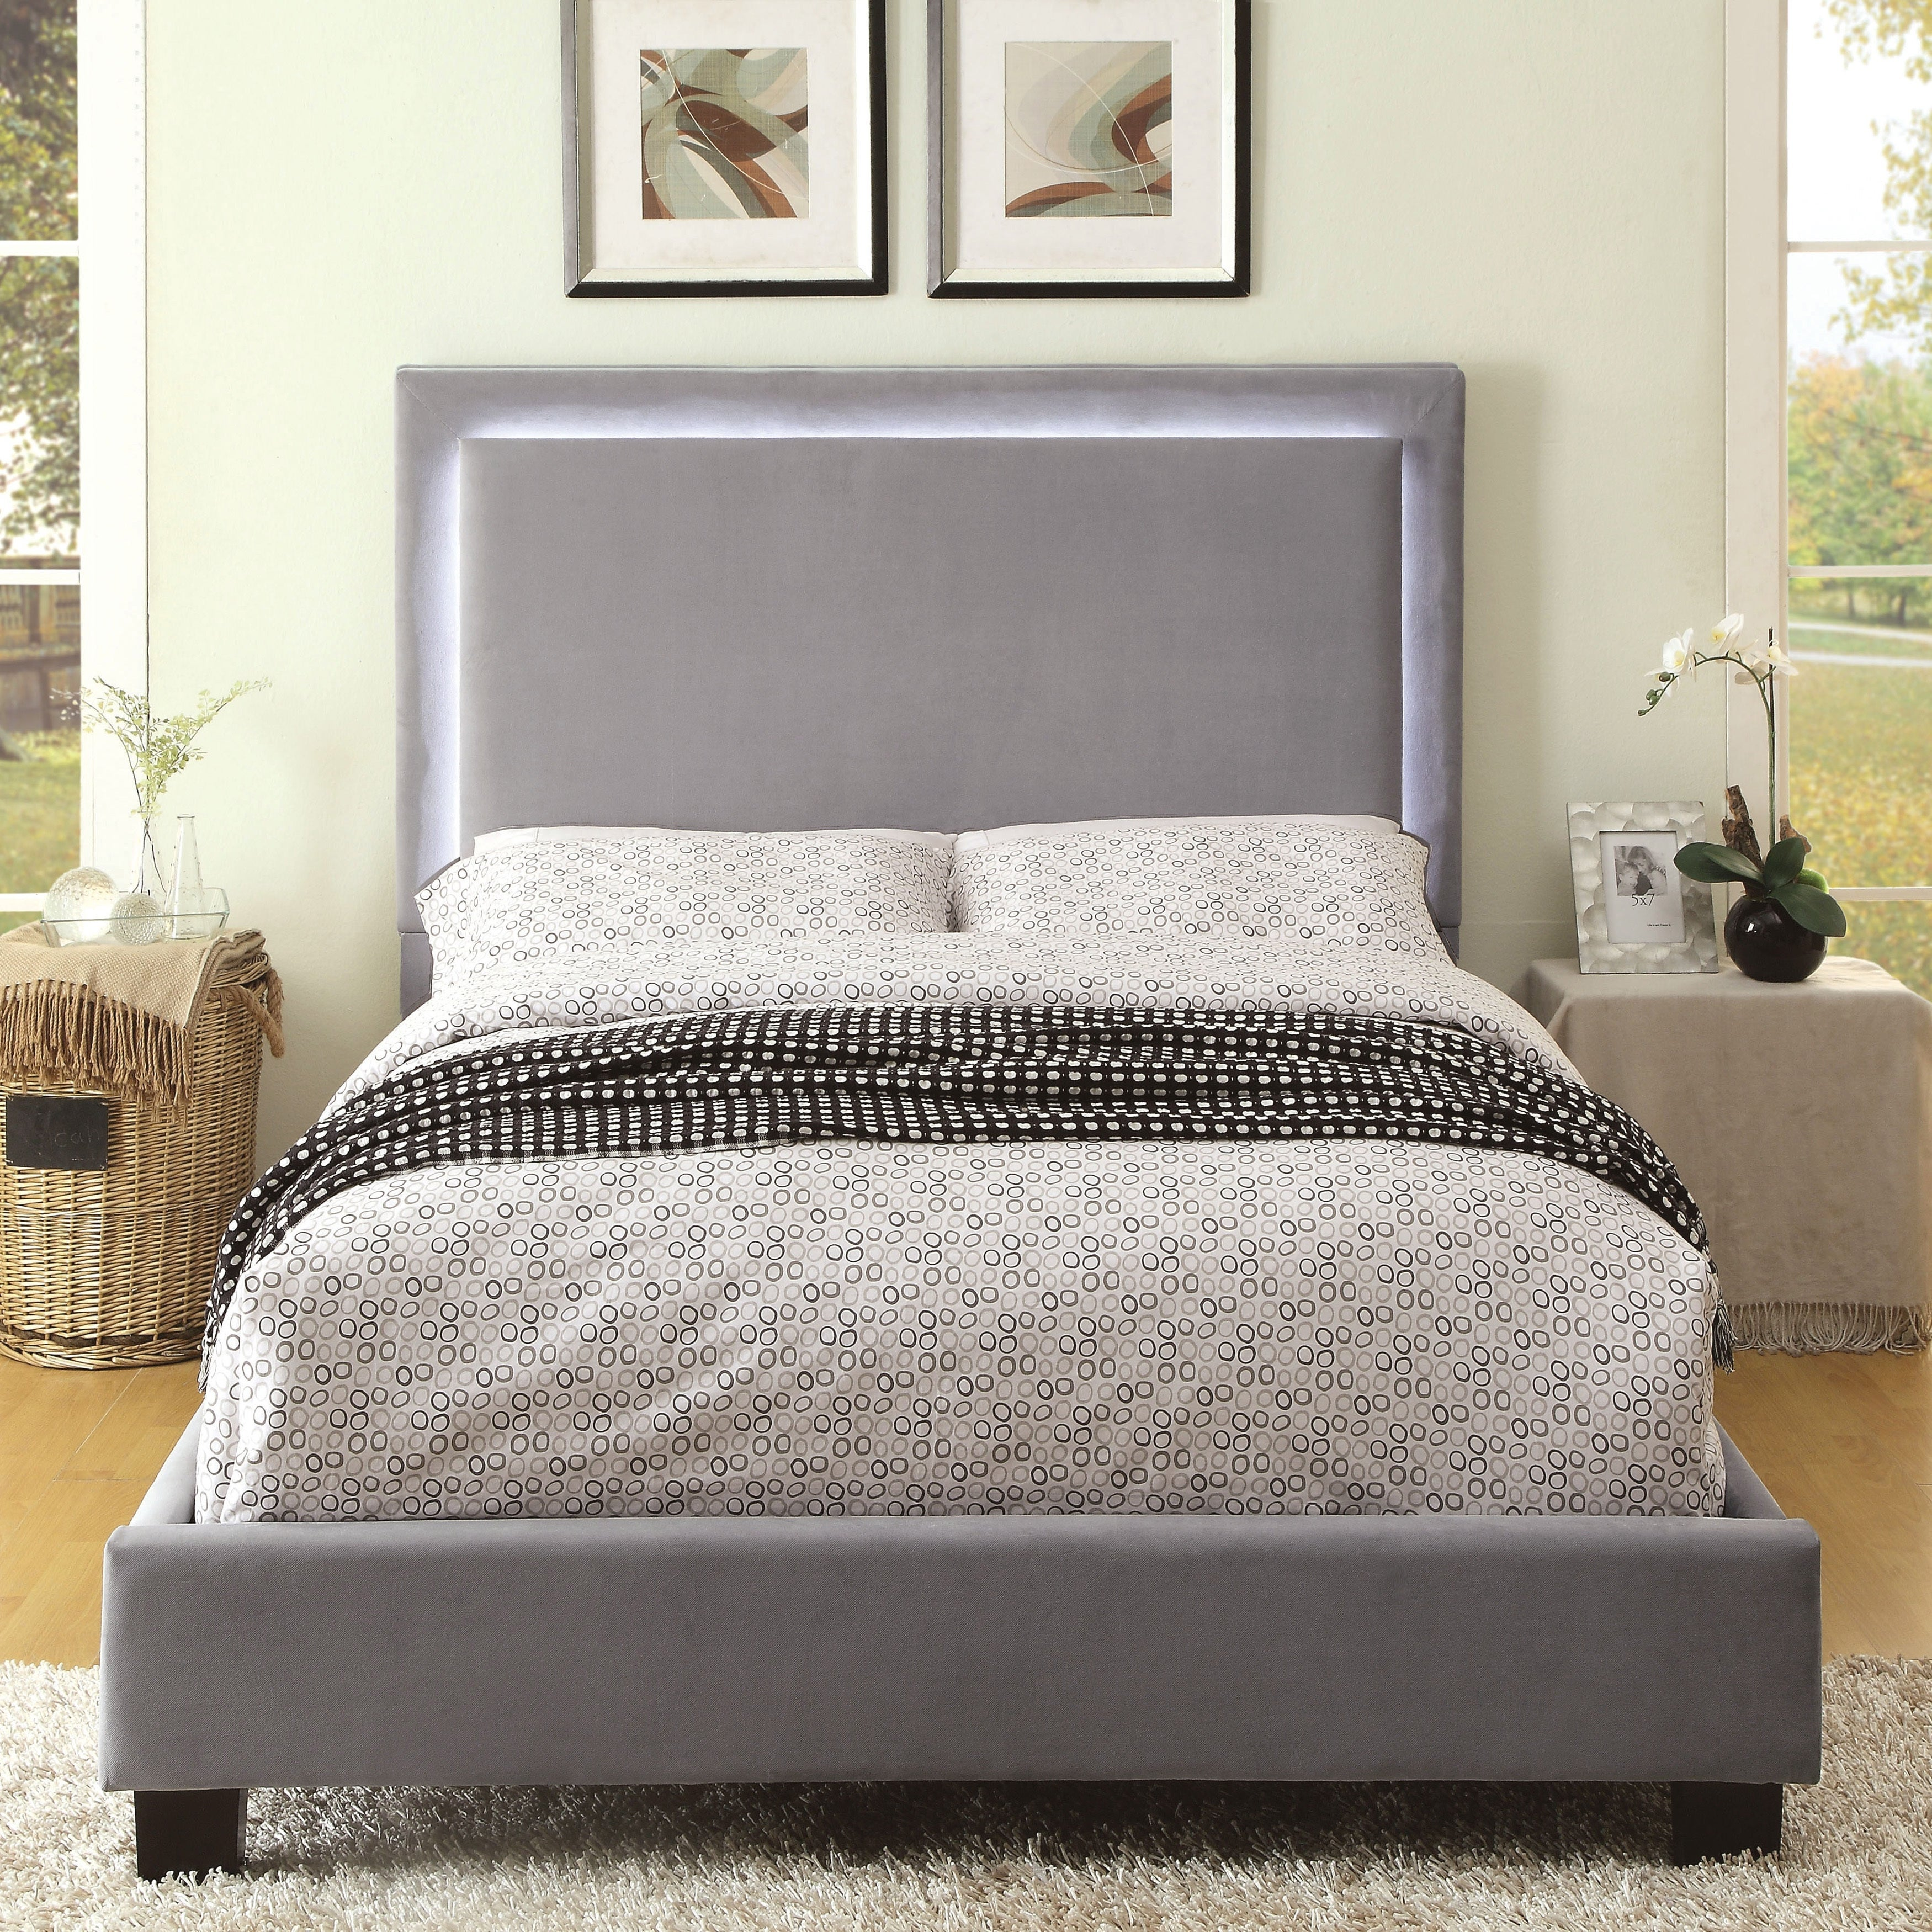 Silver Orchid Berger Led Light Grey Platform Bed Overstock 12496187 Queen